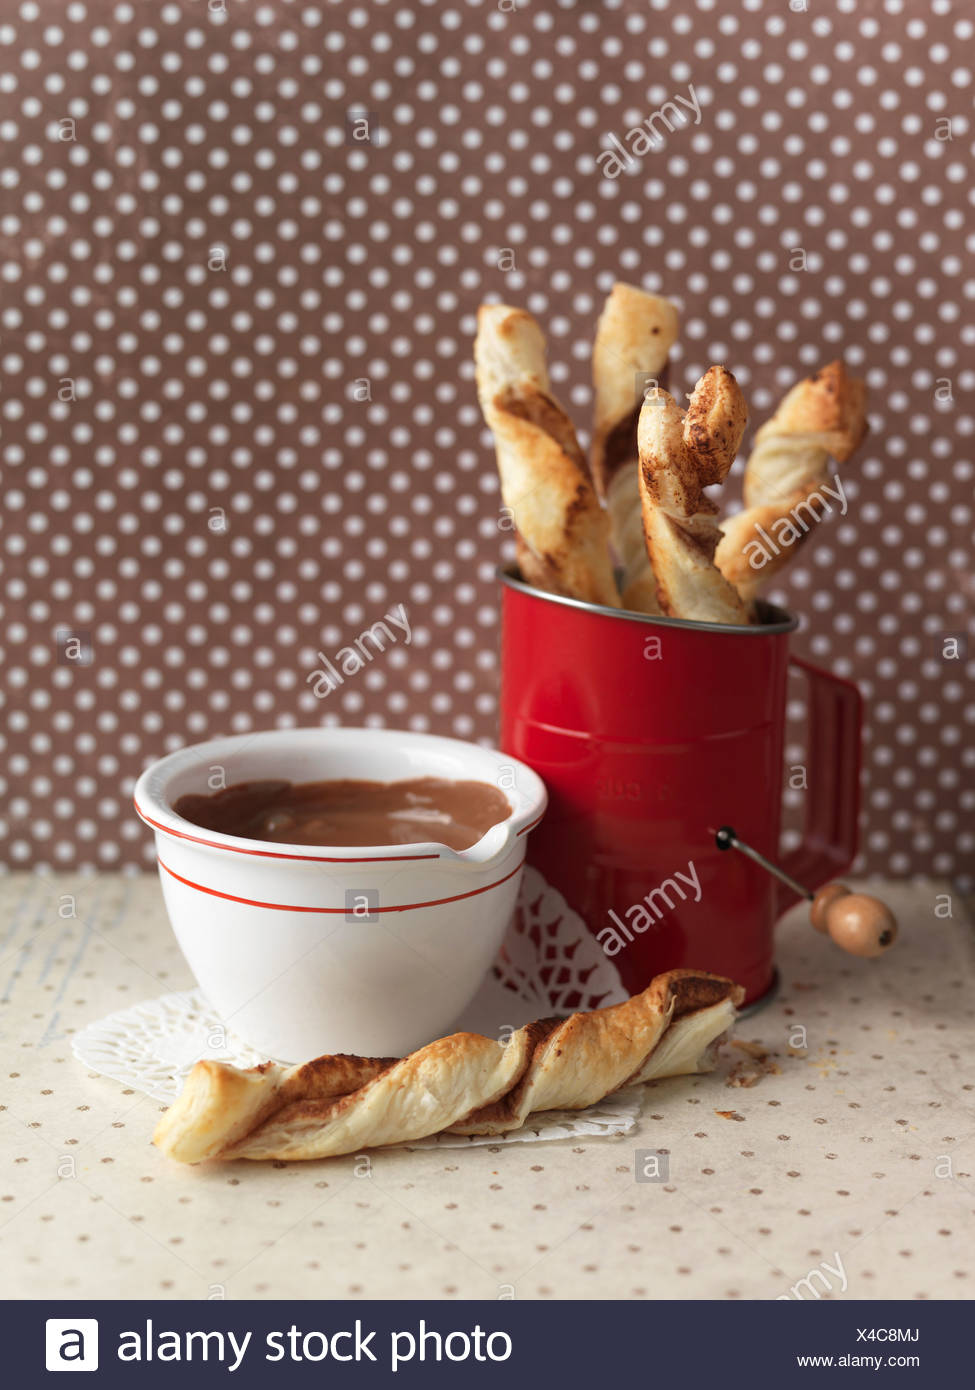 Flaky pastry twists and chocolate cream - Stock Image